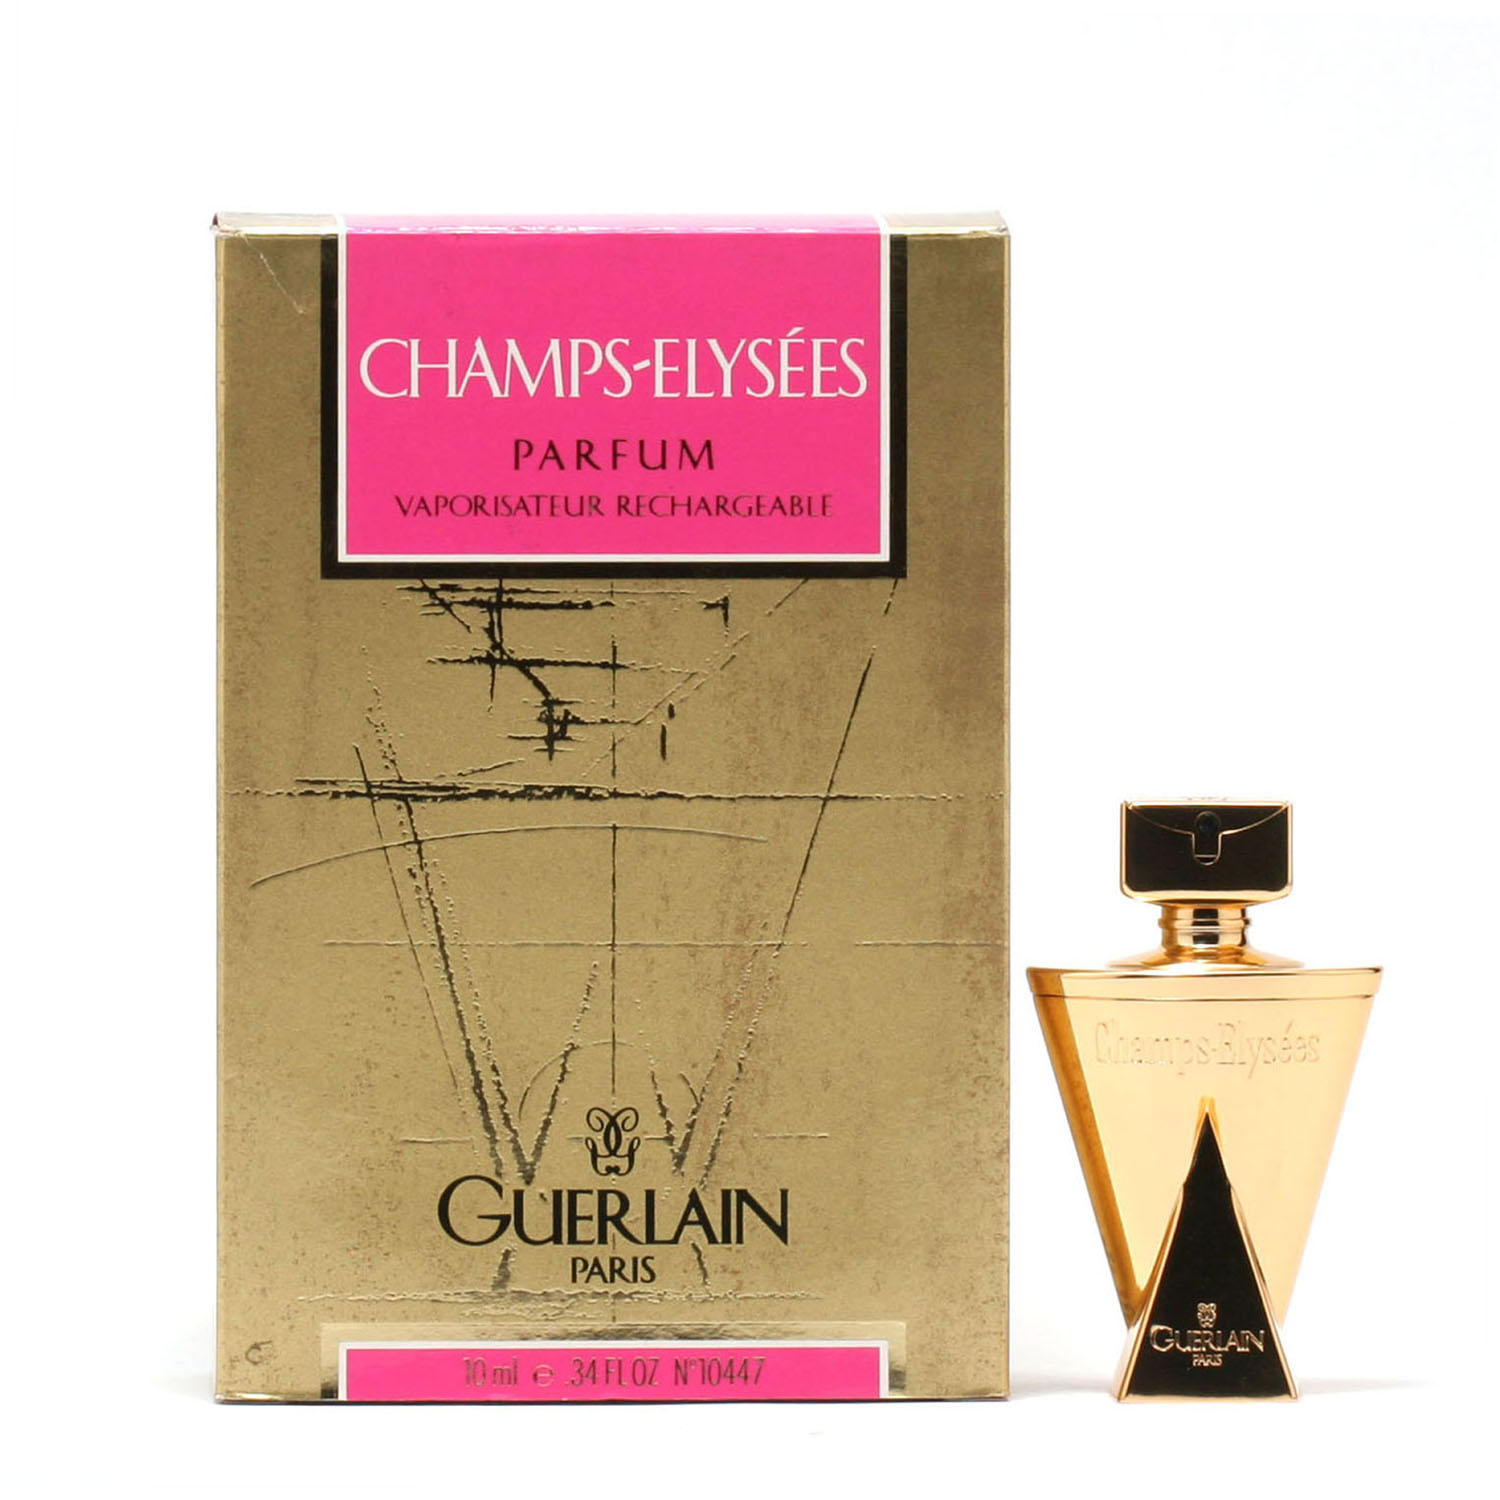 Champs Elysees Parfum Refillable 10133486